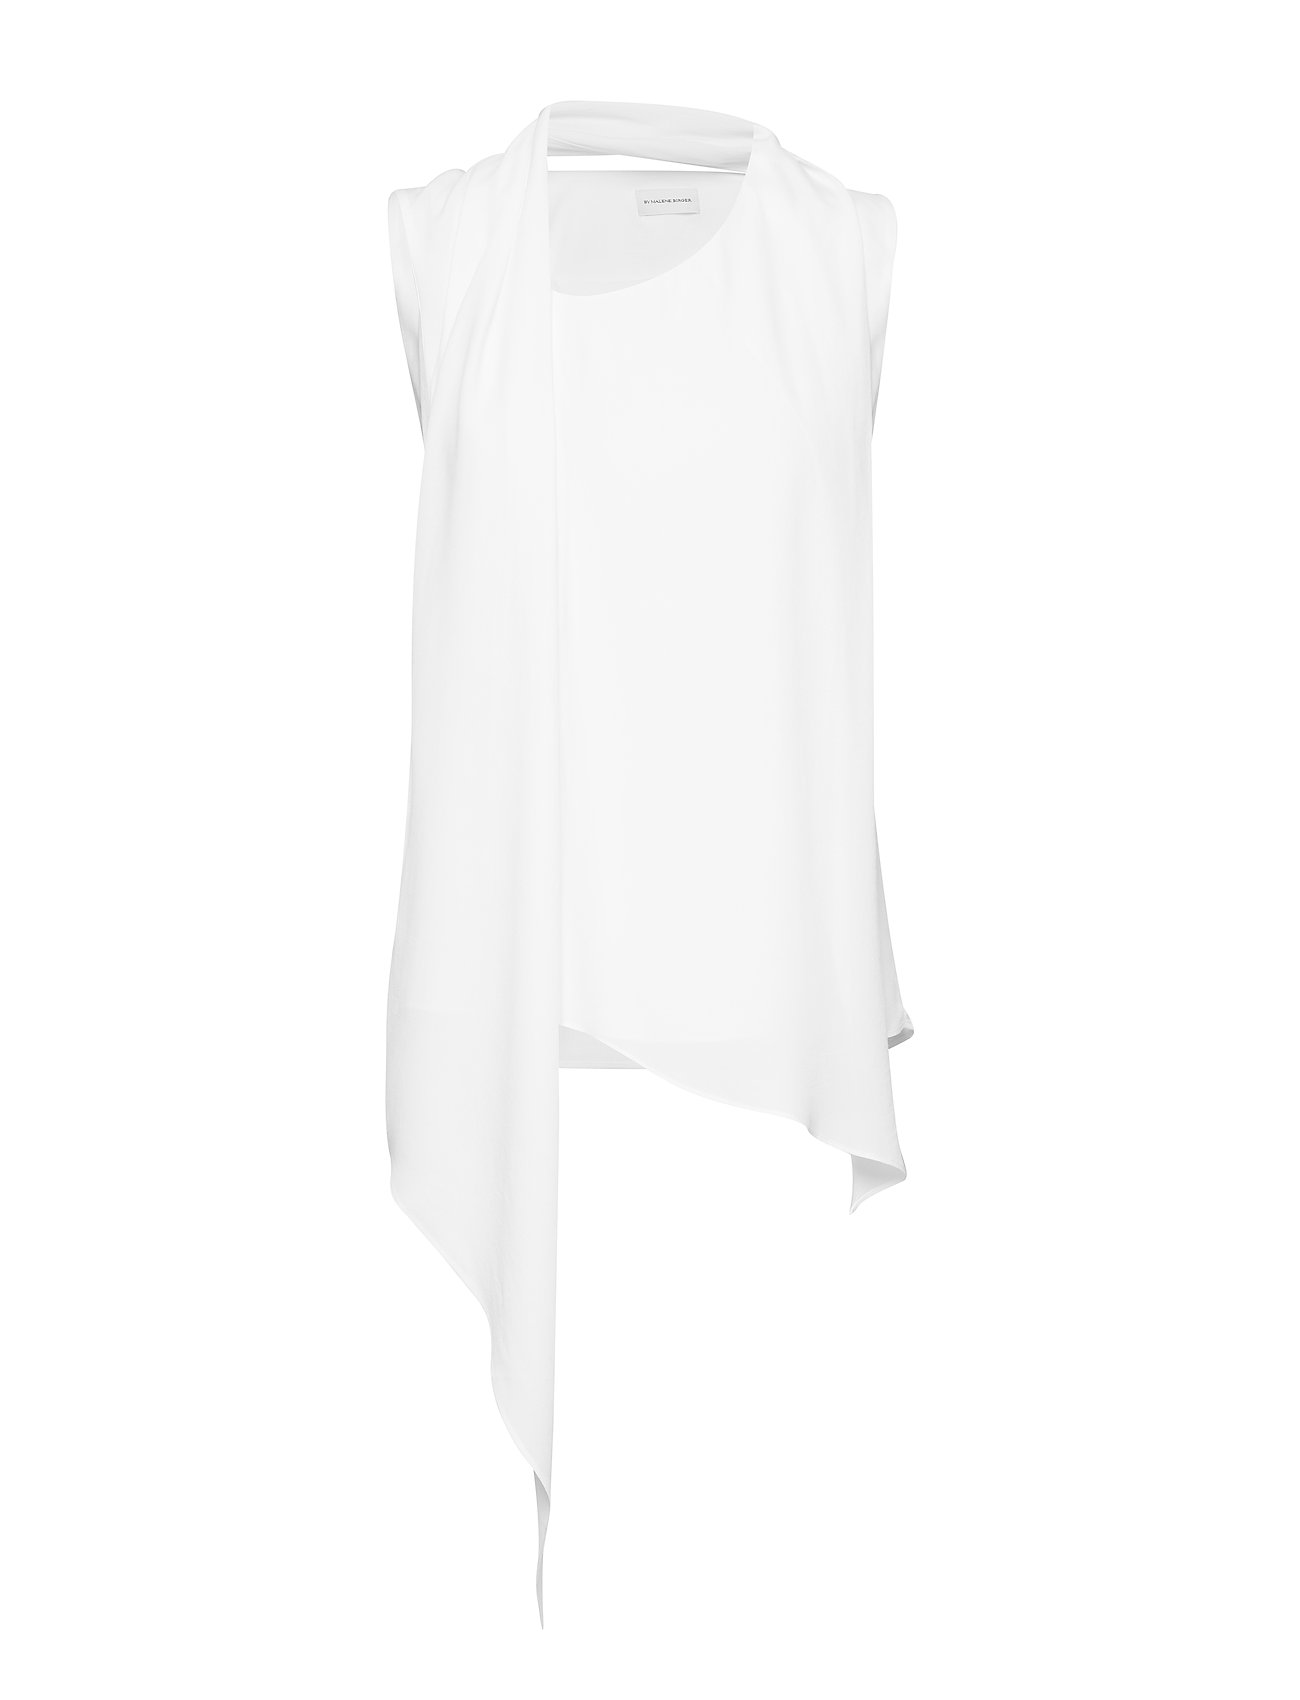 By Malene Birger BLO1012S91 - SOFT WHITE